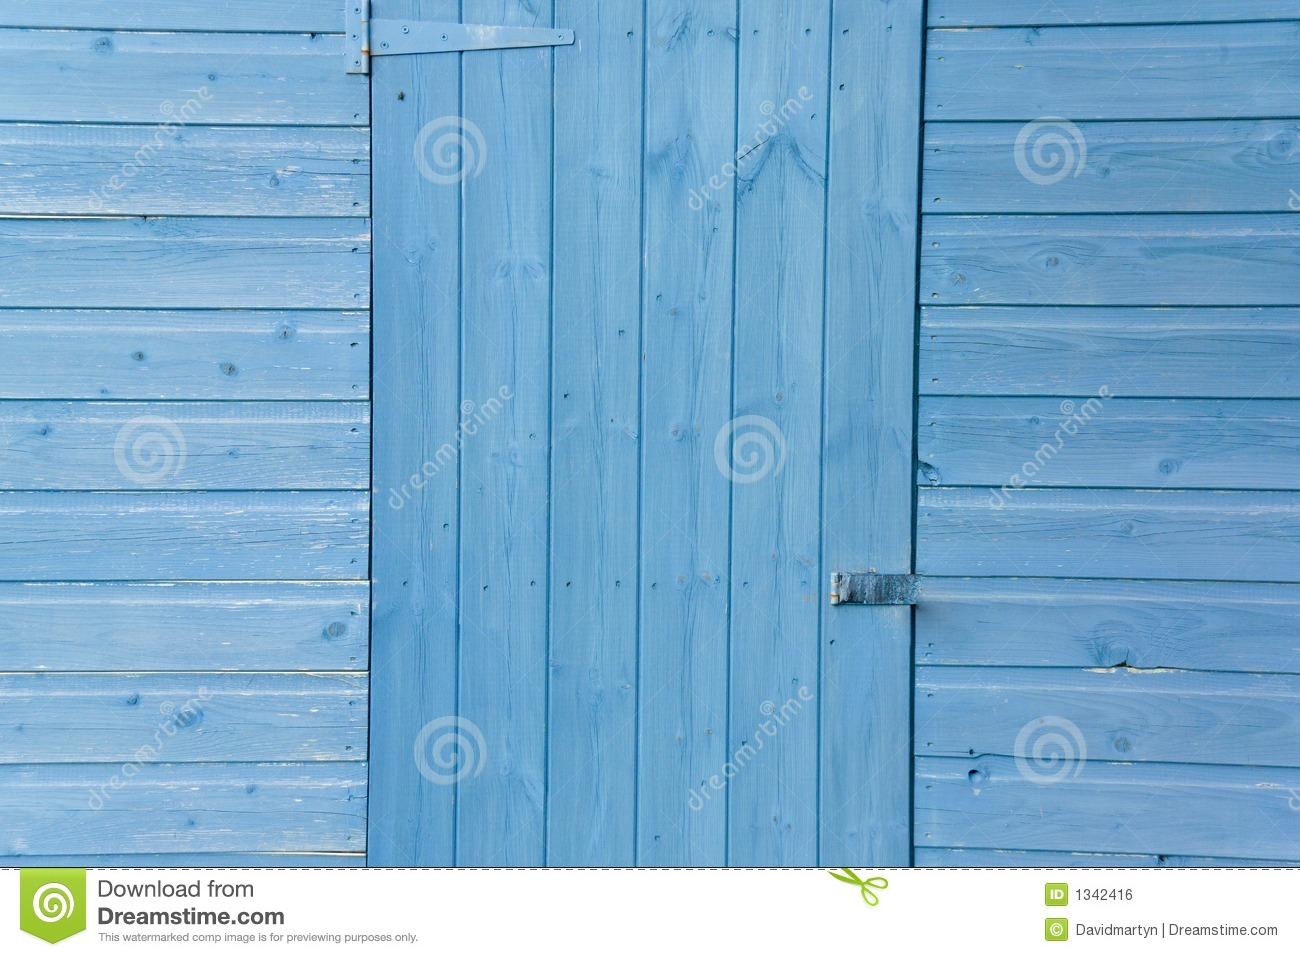 Blue Shed Door Royalty Free Stock Image - Image: 1342416